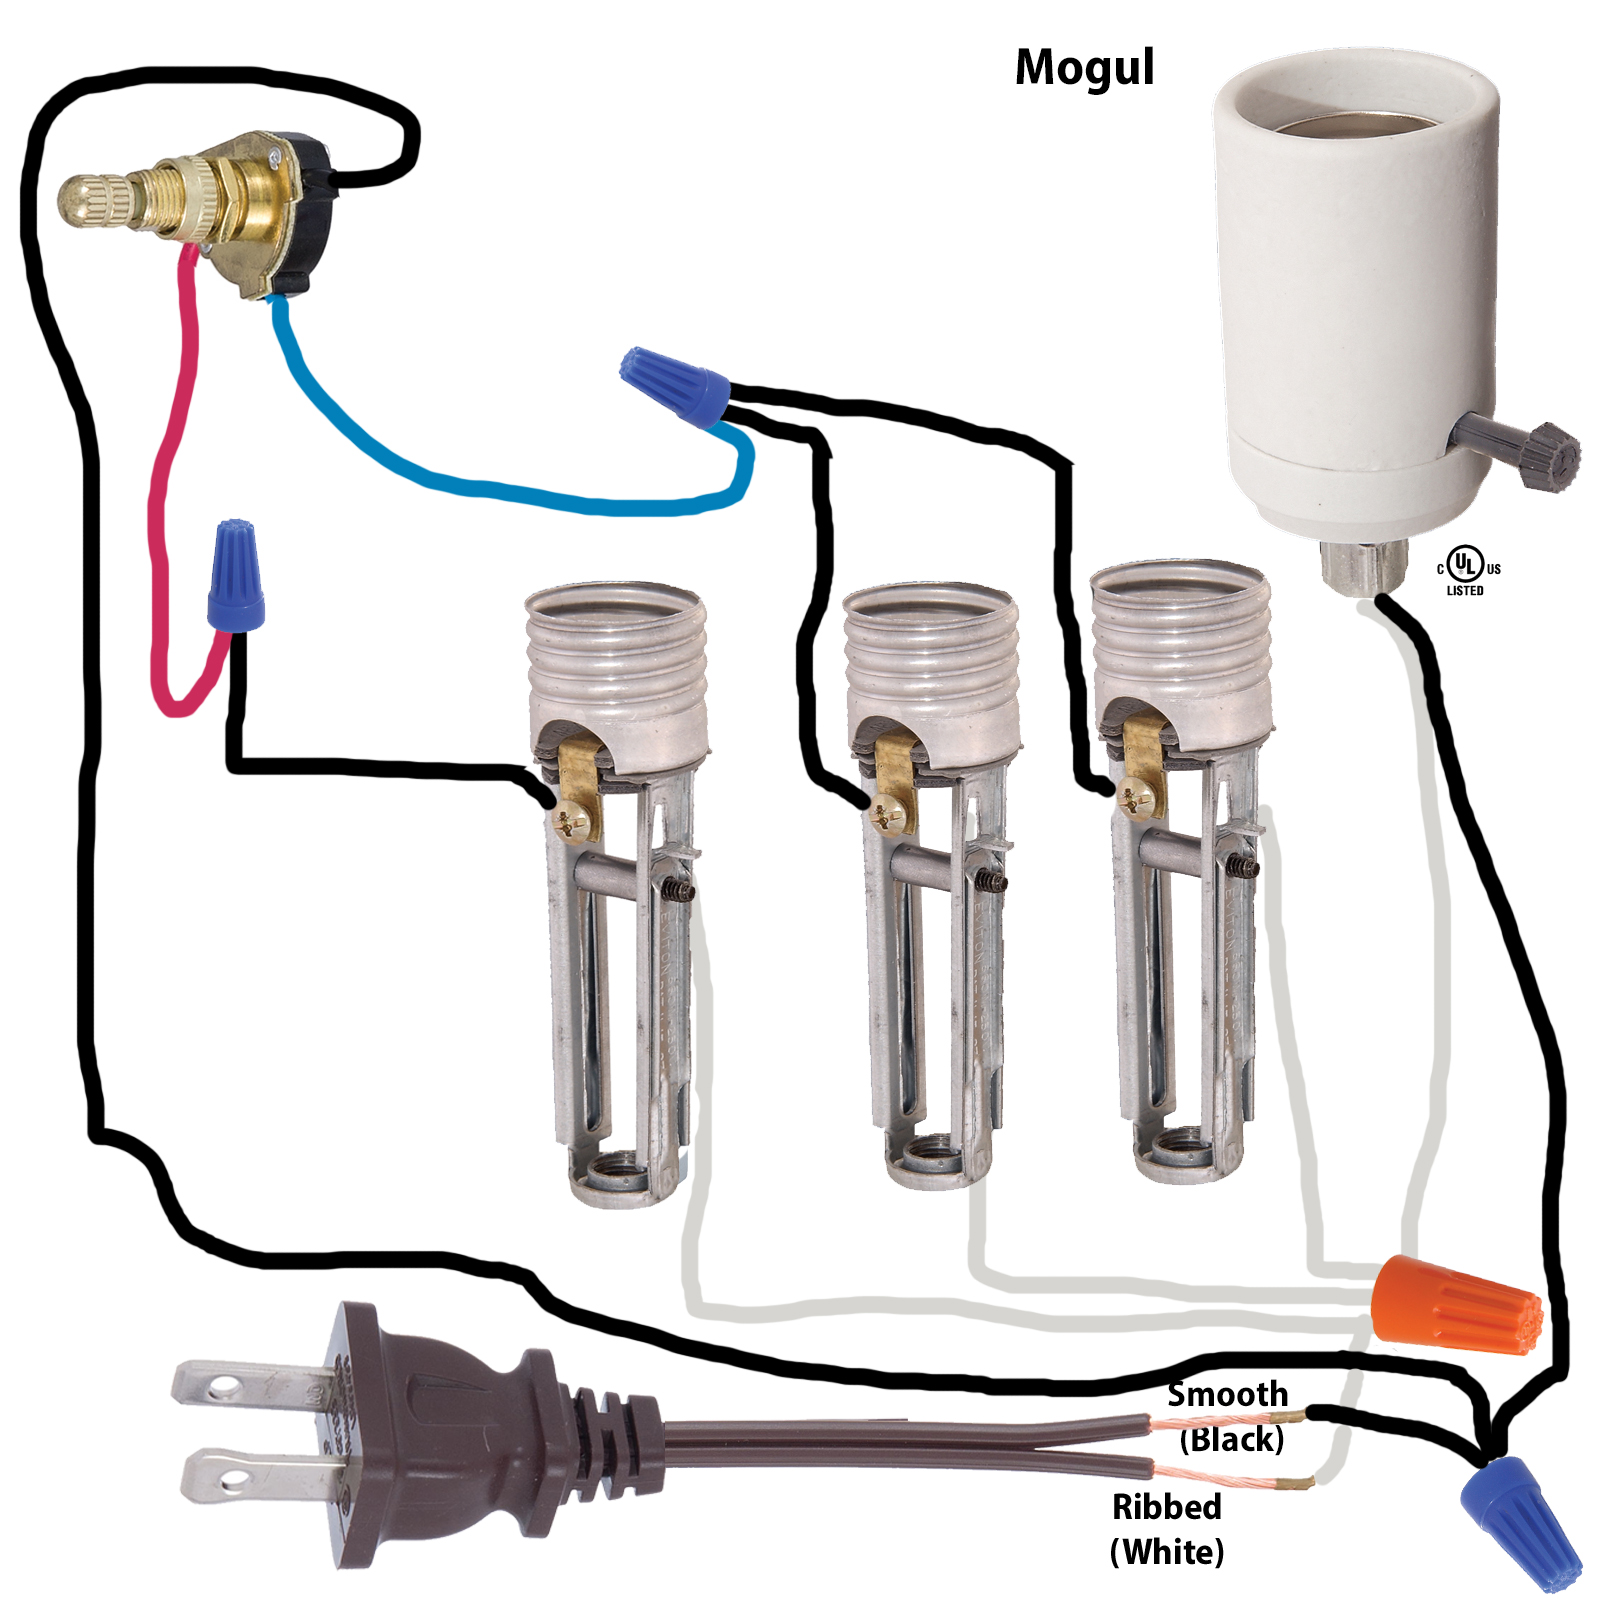 rotary switch wiring diagram chrysler sebring diagrams two circuit 40402i b p lamp supply with brass tone knob and 6 18 ga wire leads rated 3a 125 t u l csa instructions for